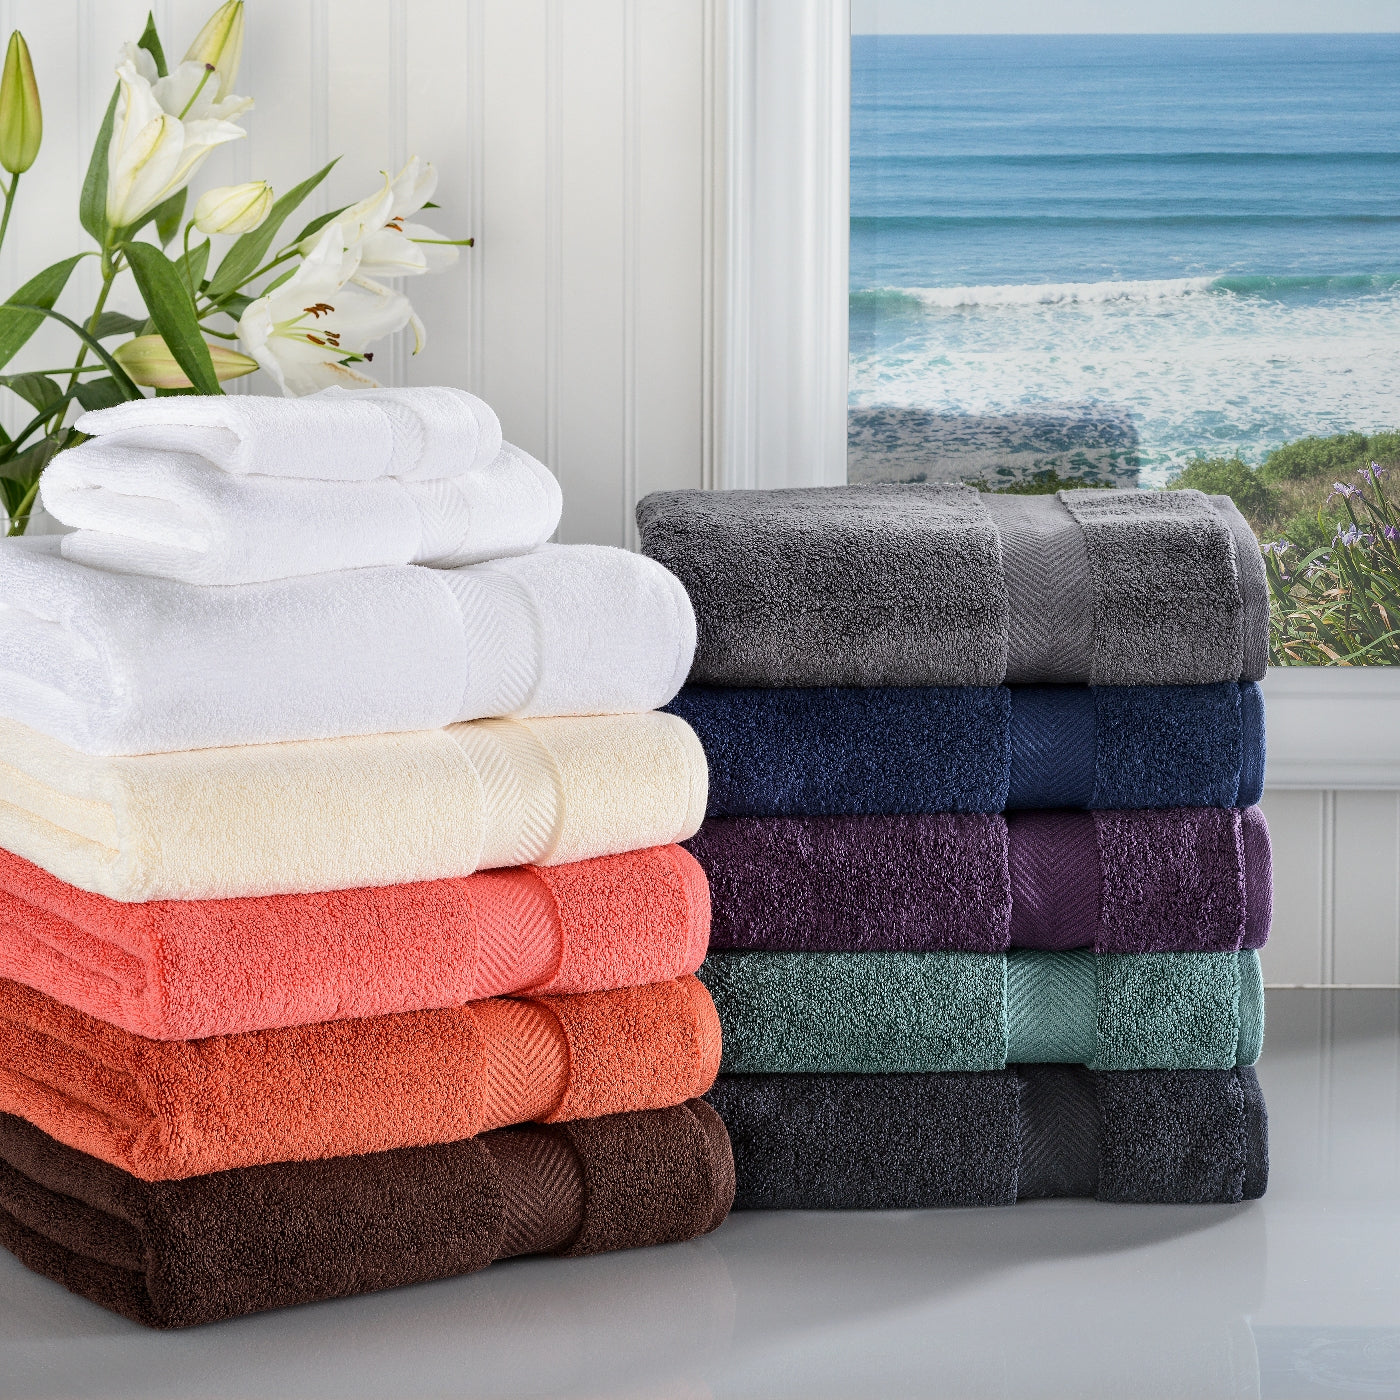 Zero-Twist Cotton 3-Piece Bath Towel Set